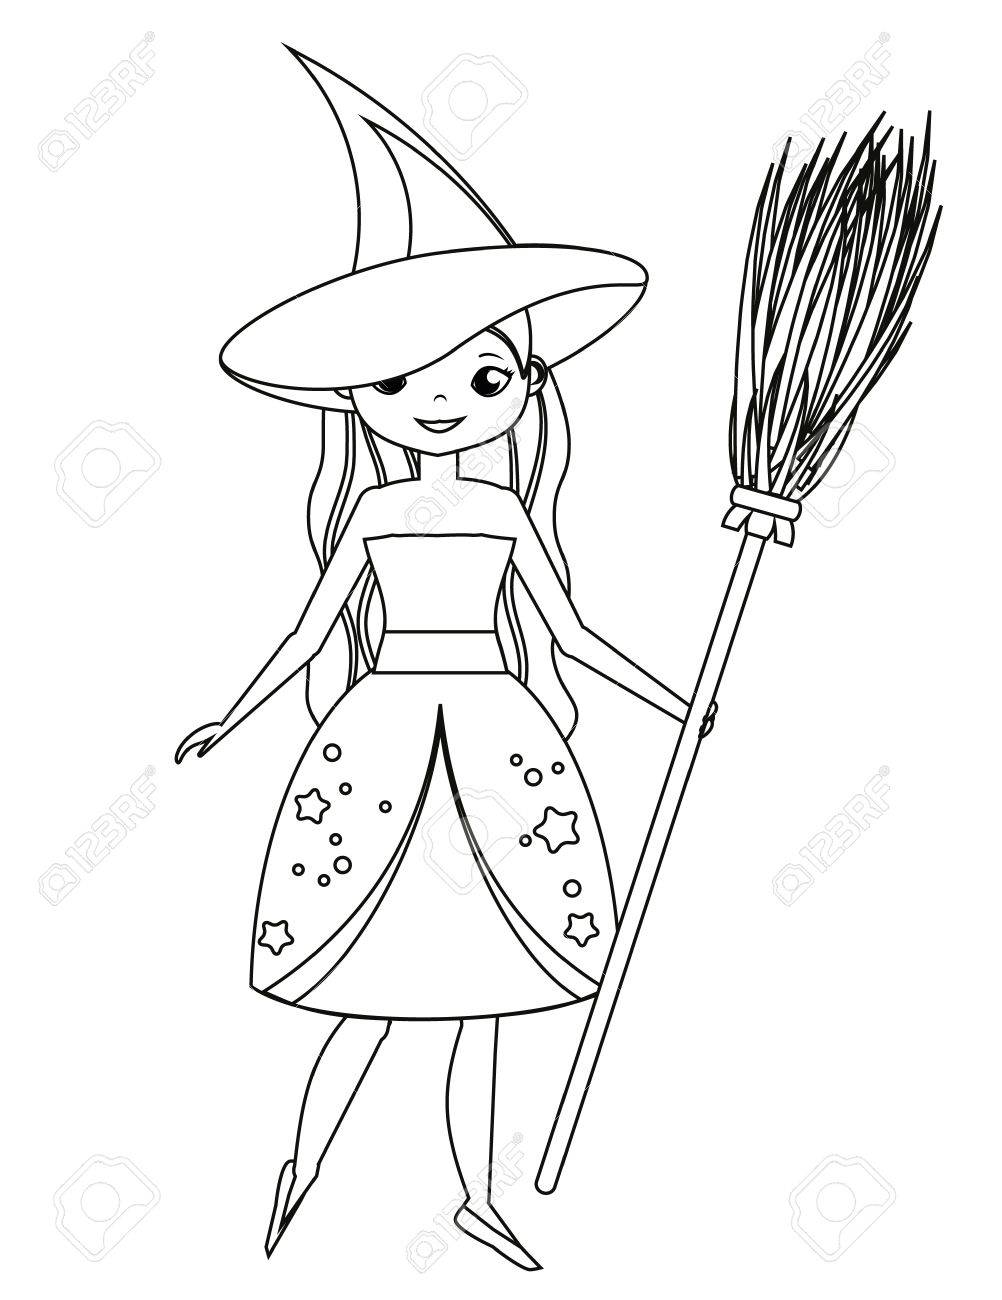 1002x1300 Coloring Page For Children. Cute Witch Holding Broom. Girl